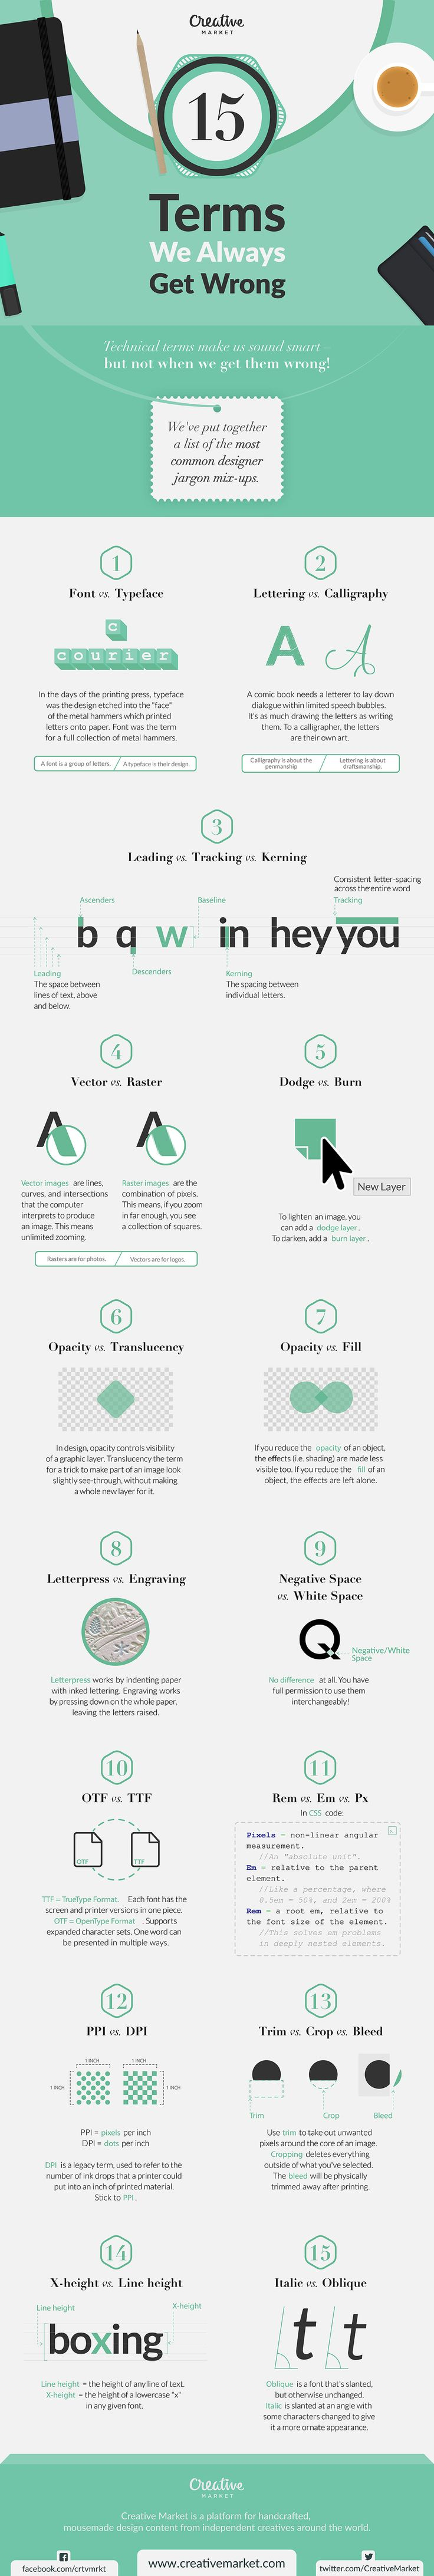 how to get colours previously used adobe illustrator